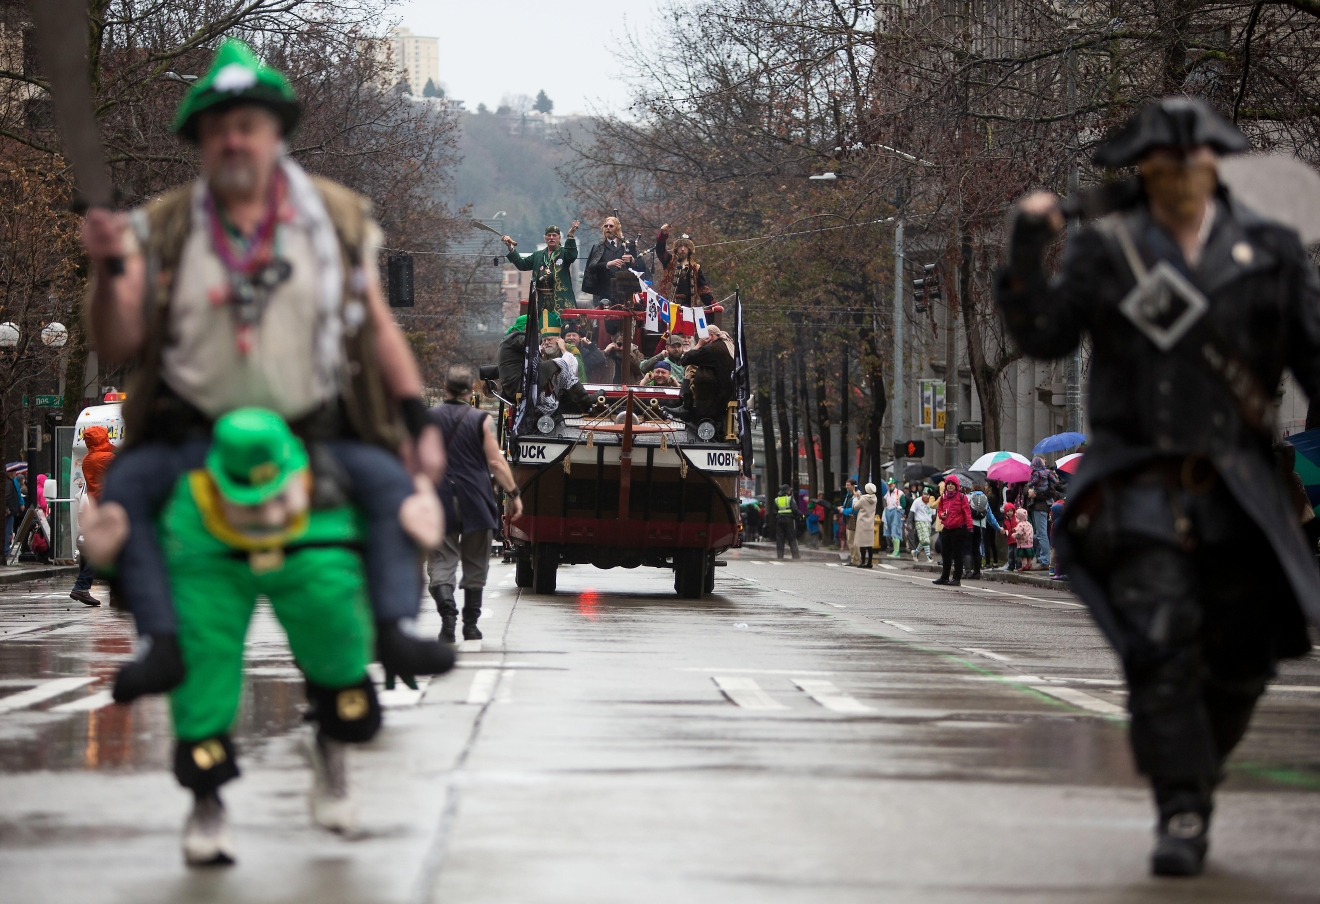 Rain didn't stop the crowds of people from coming out to the annual St. Patricks Day Parade in downtown Seattle. Bagpipers, bands, dancers, dogs and more marched down 4th to celebrate St. Patrick's Day. (Image: Sy Bean / Seattle Refined)